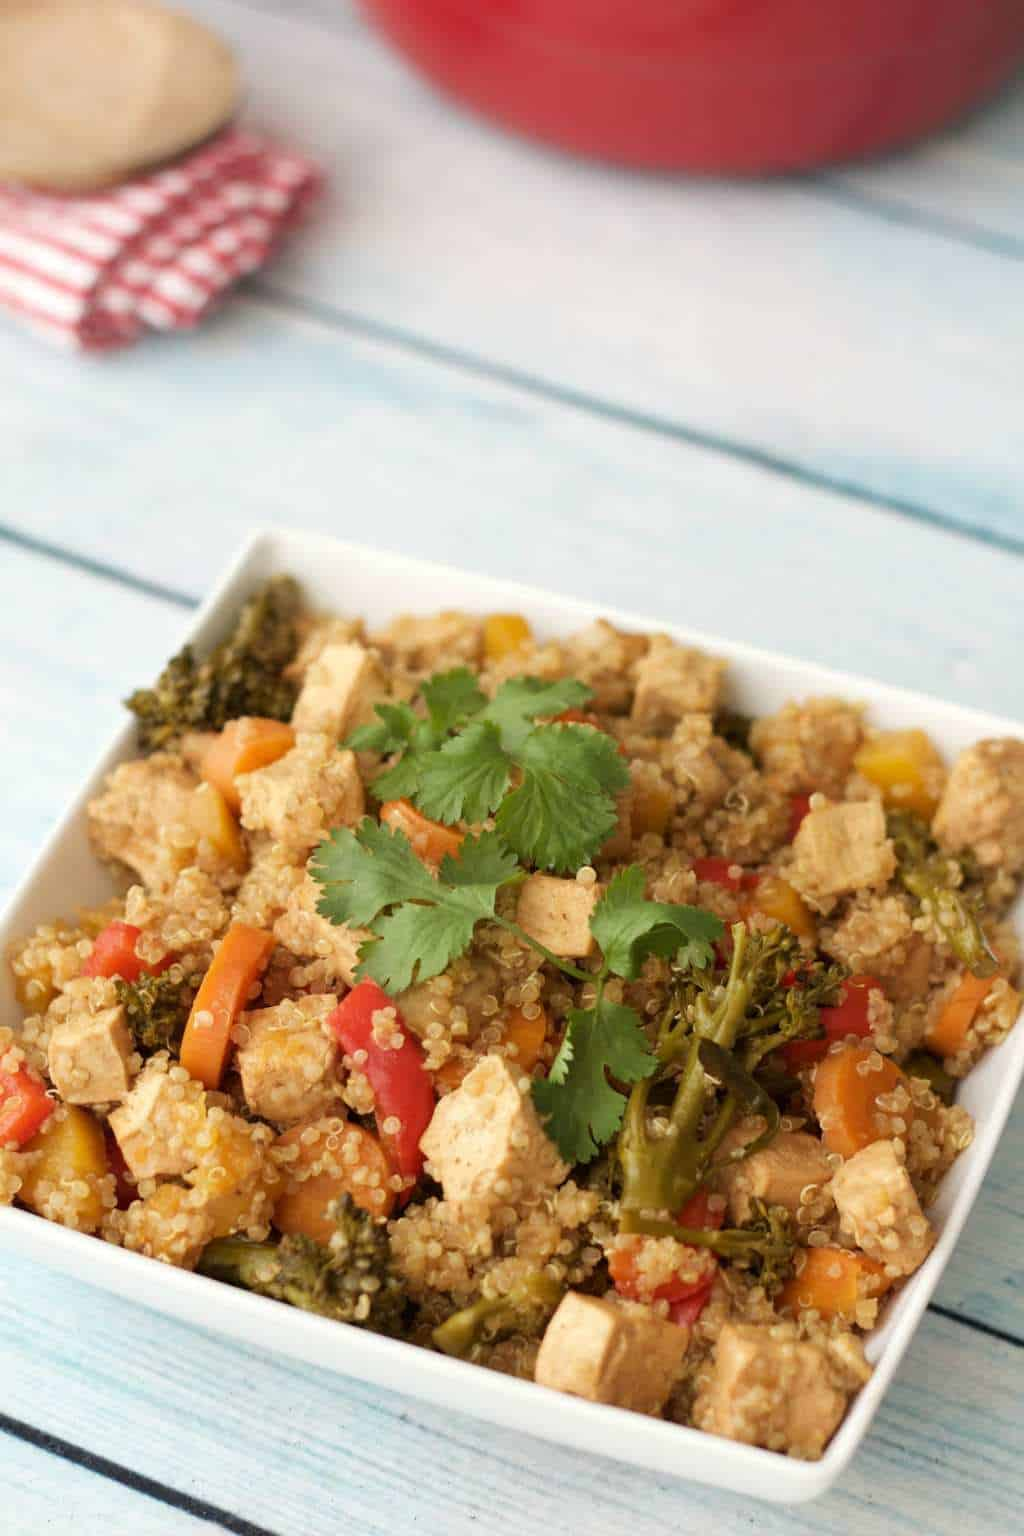 Baked Tofu and Vegetable Casserole with Quinoa - Loving It ...